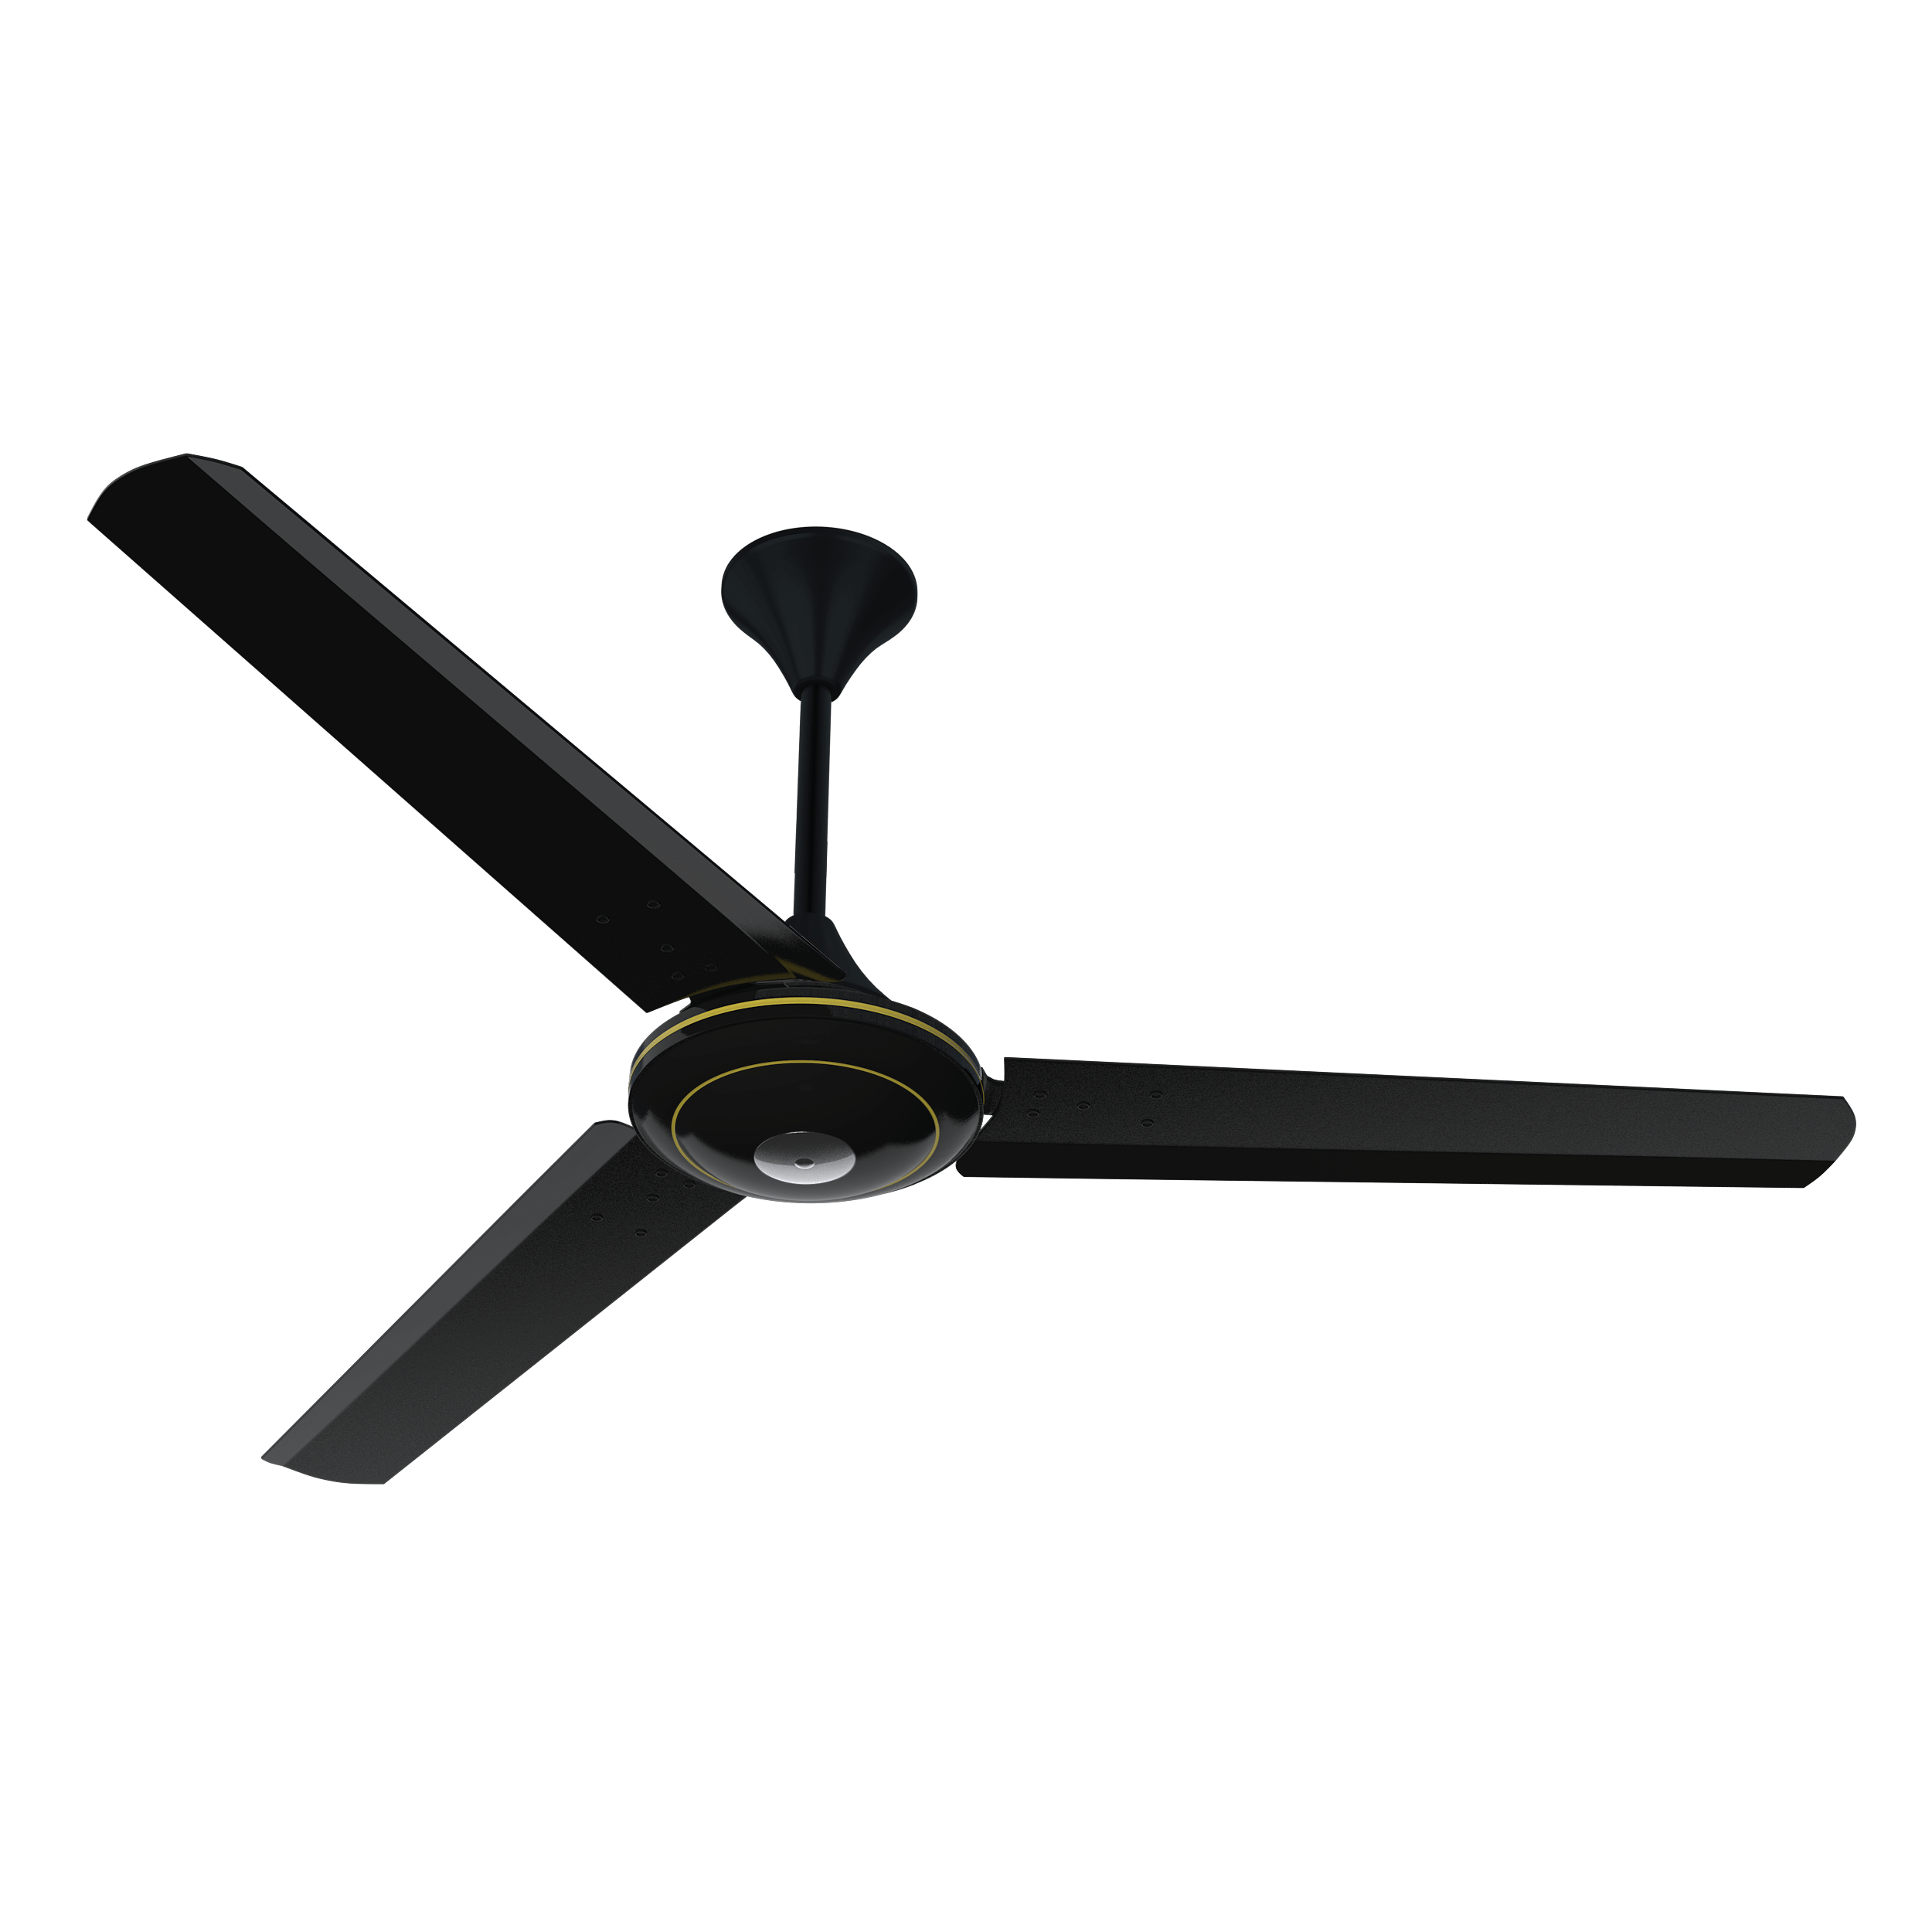 "Conion Ceiling Fan Florence 56"" 3 Blades (Oxide Black)"